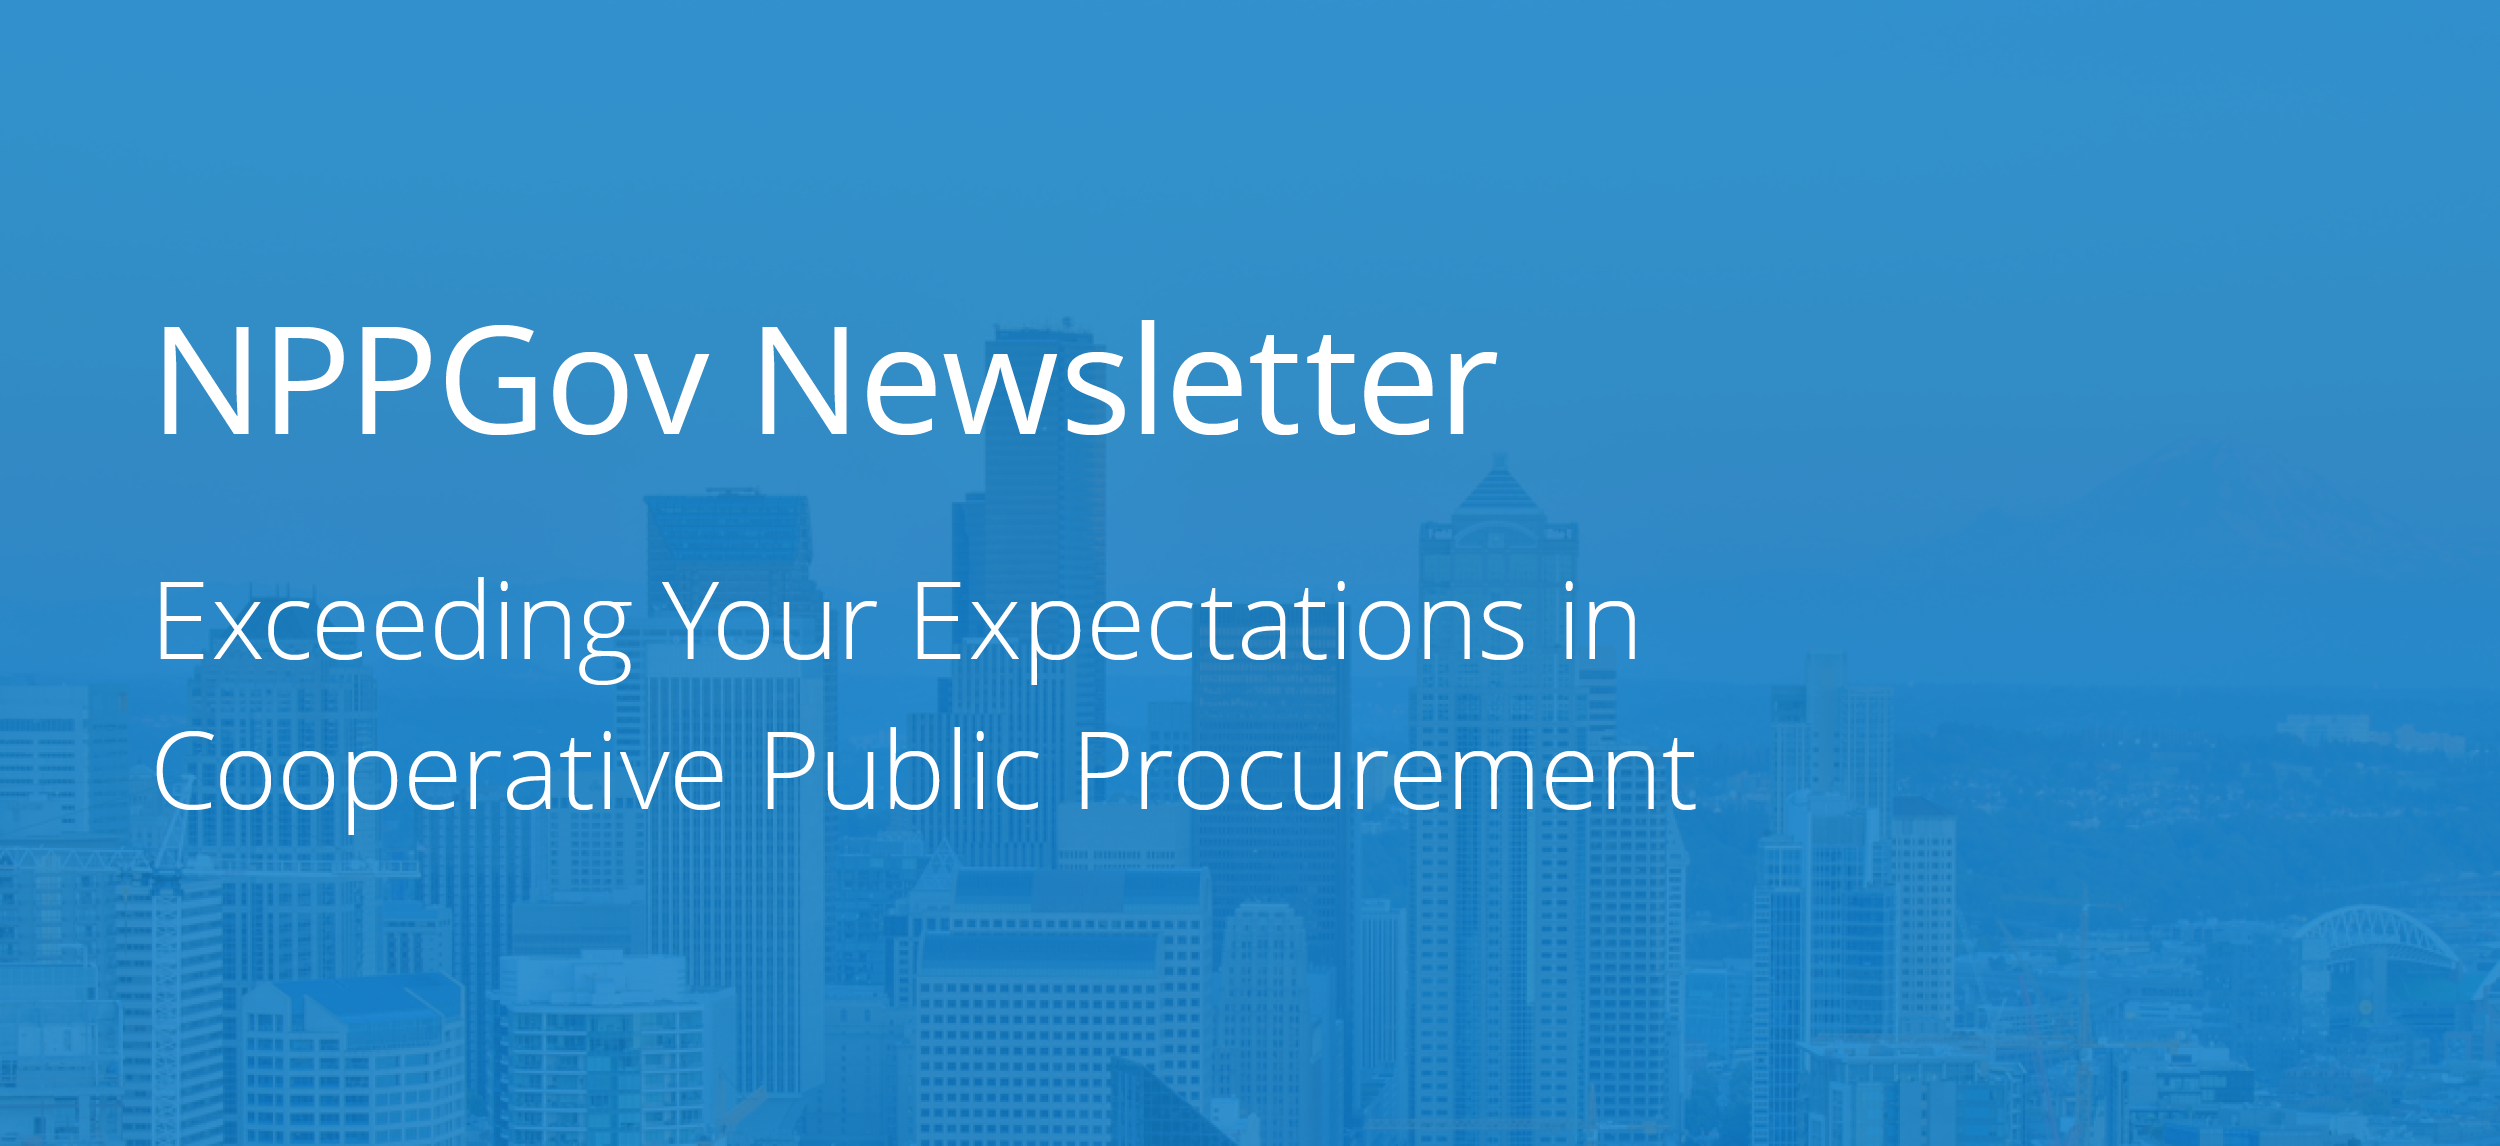 Your NPPGov Q3 Newsletter